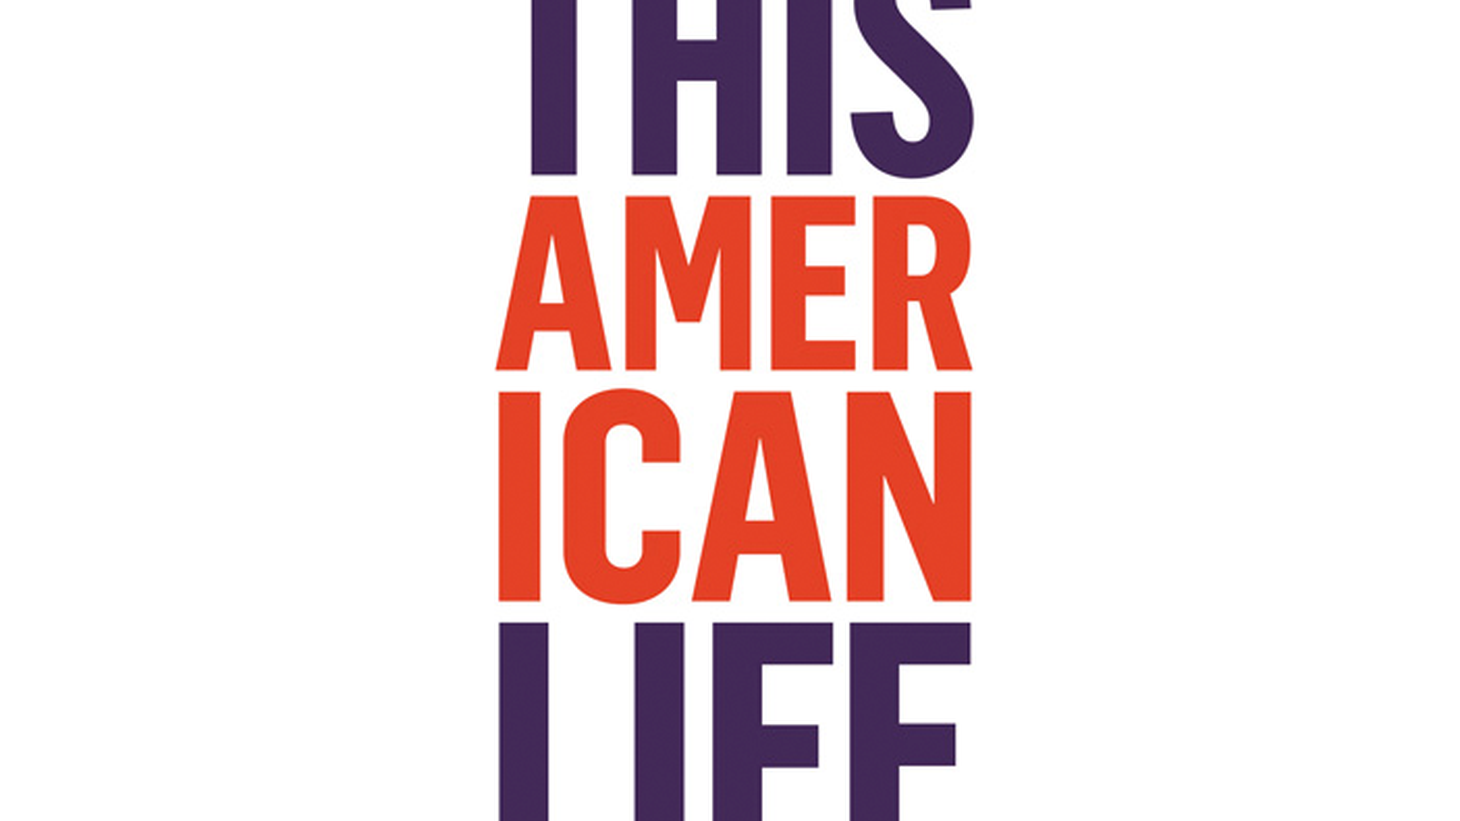 Special pledge drive edition features more of our favorite stories from This American Life.